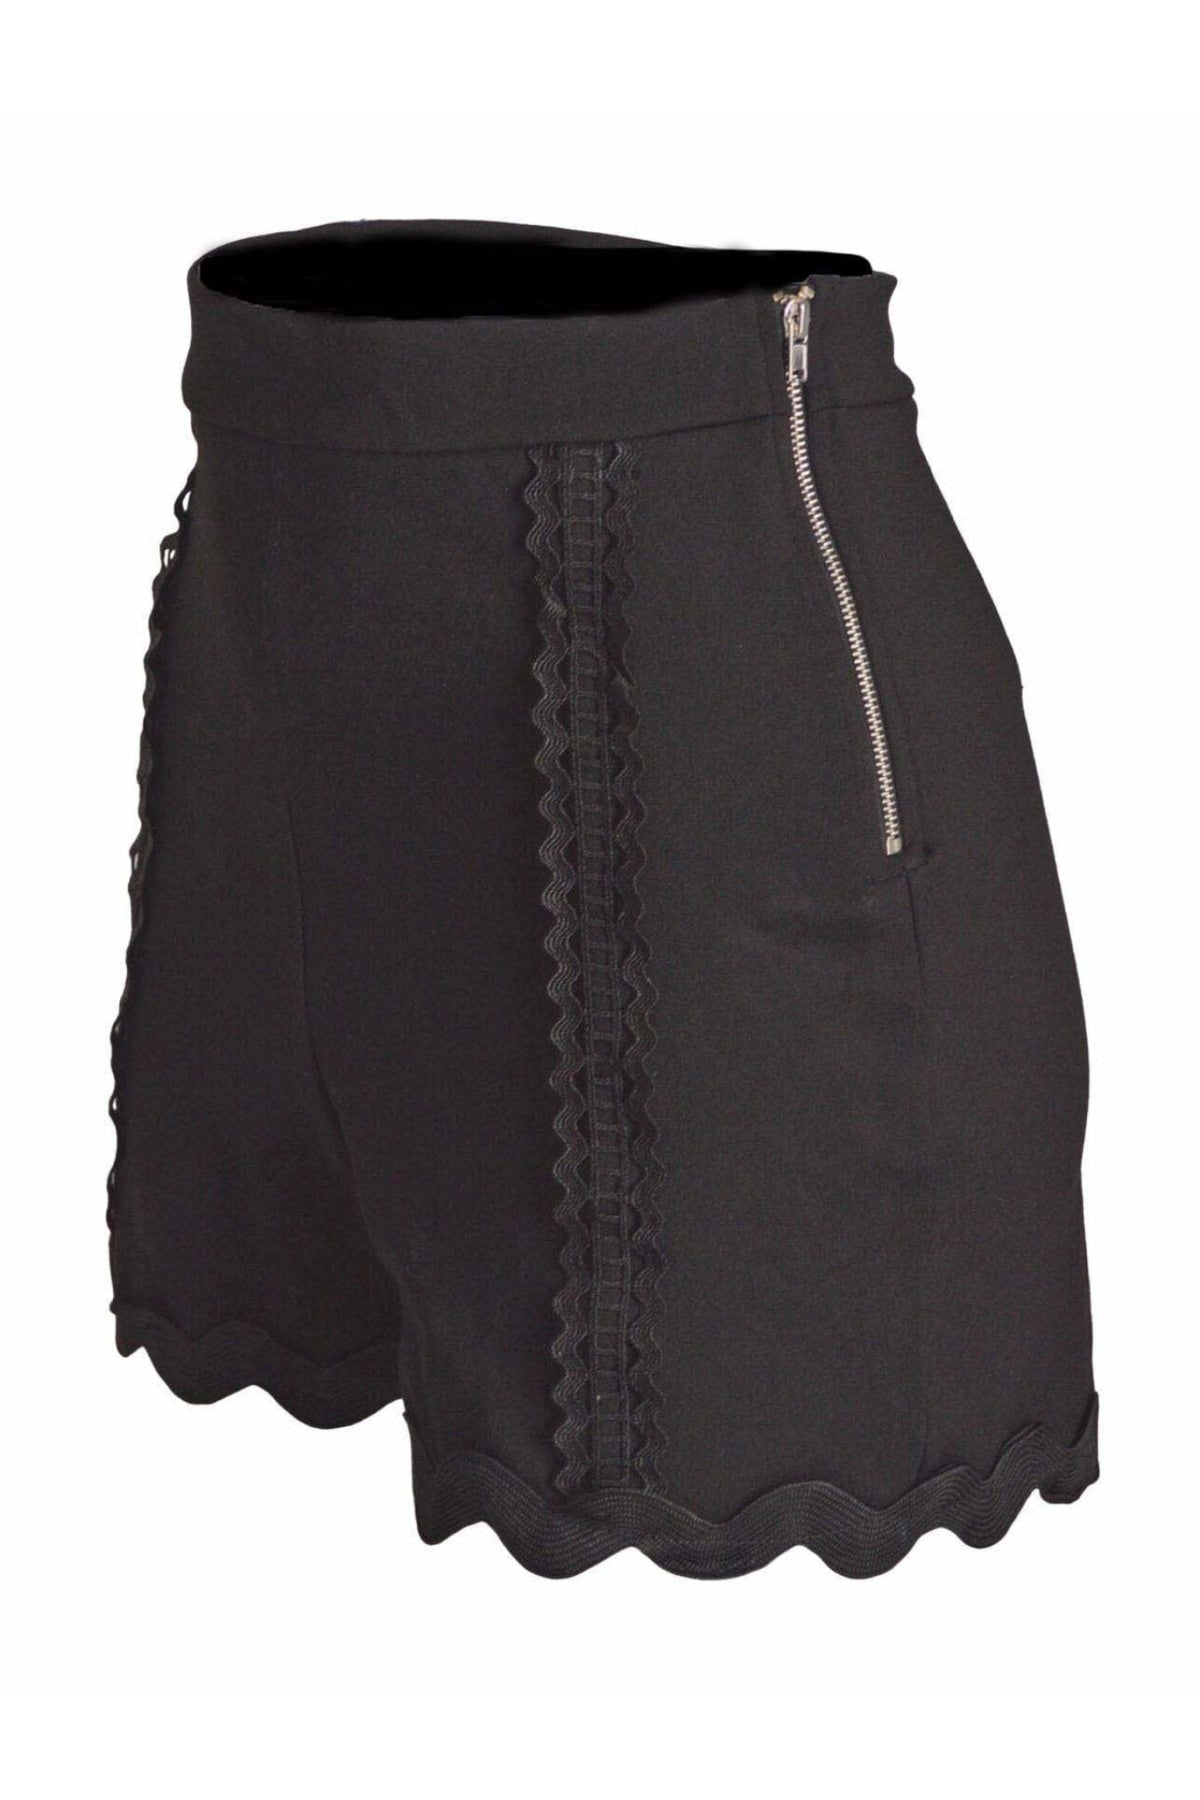 Topshop Ex Topshop Black Ponte Lace Trim Shorts | Secret Label